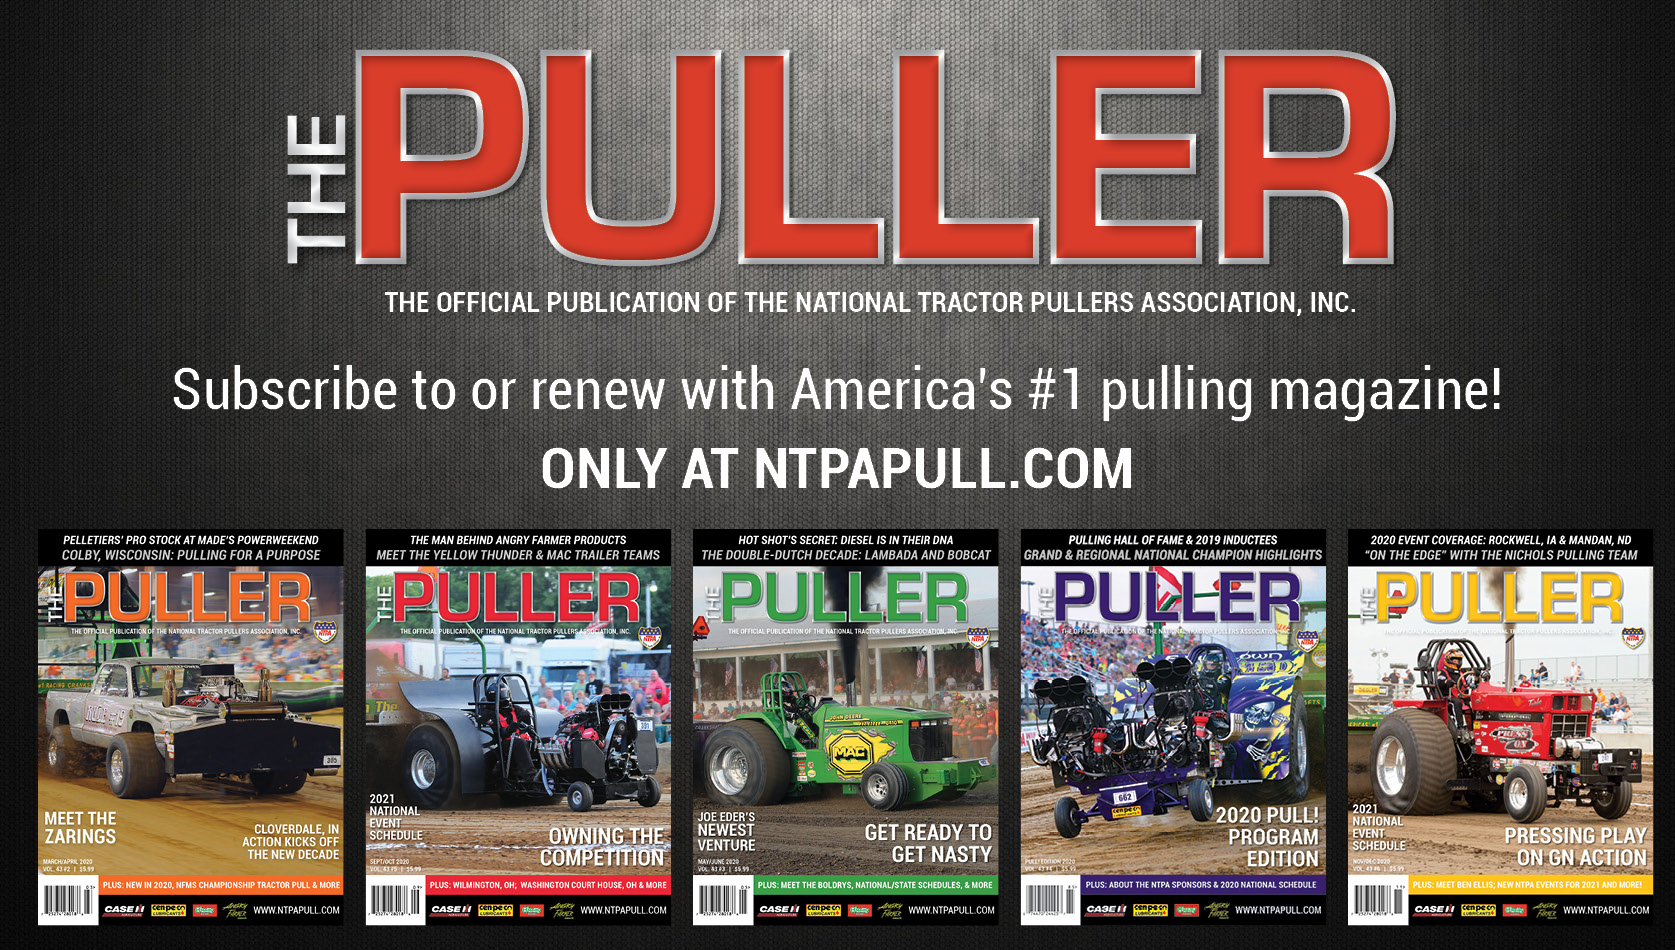 Subscribe to The Puller